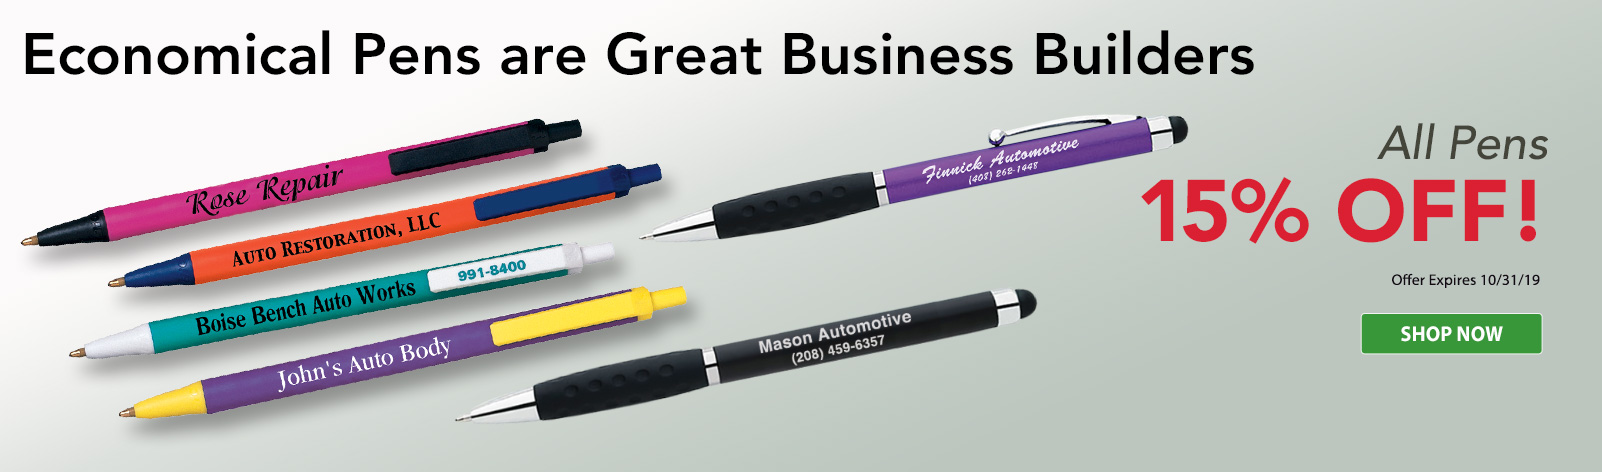 Personalized Pens